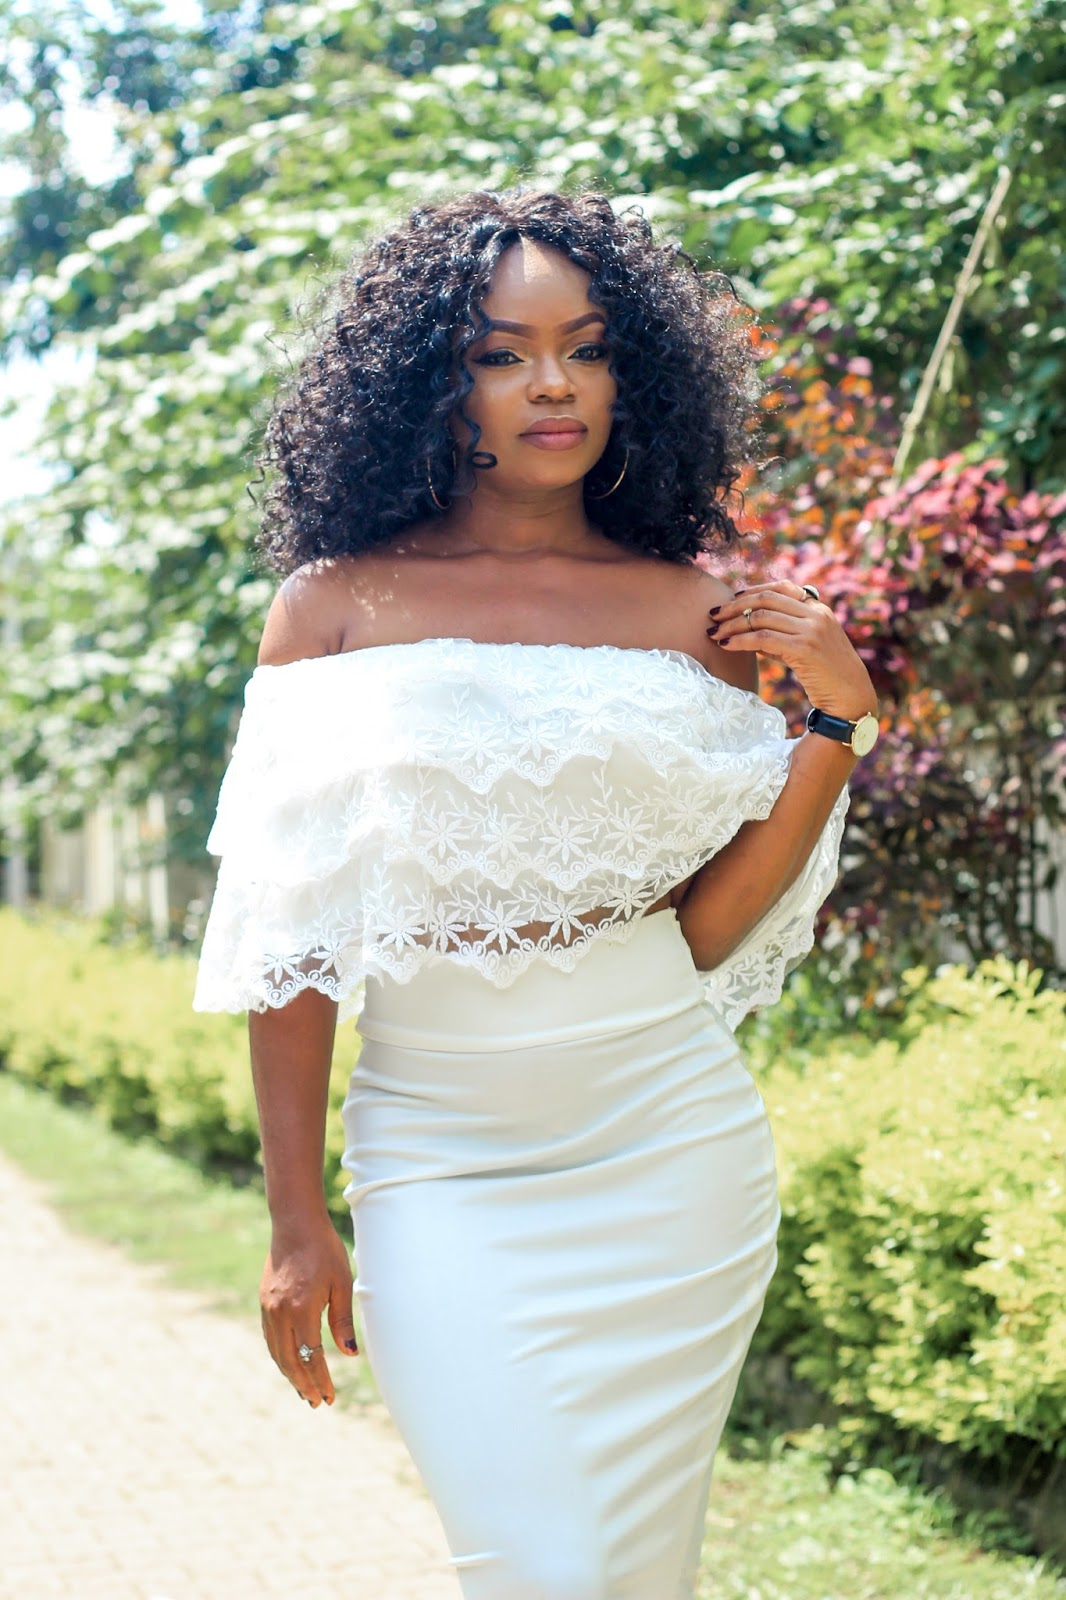 COLD SHOULDER - Lace Cold/Off Shoulder Top with White Pencil Skirt